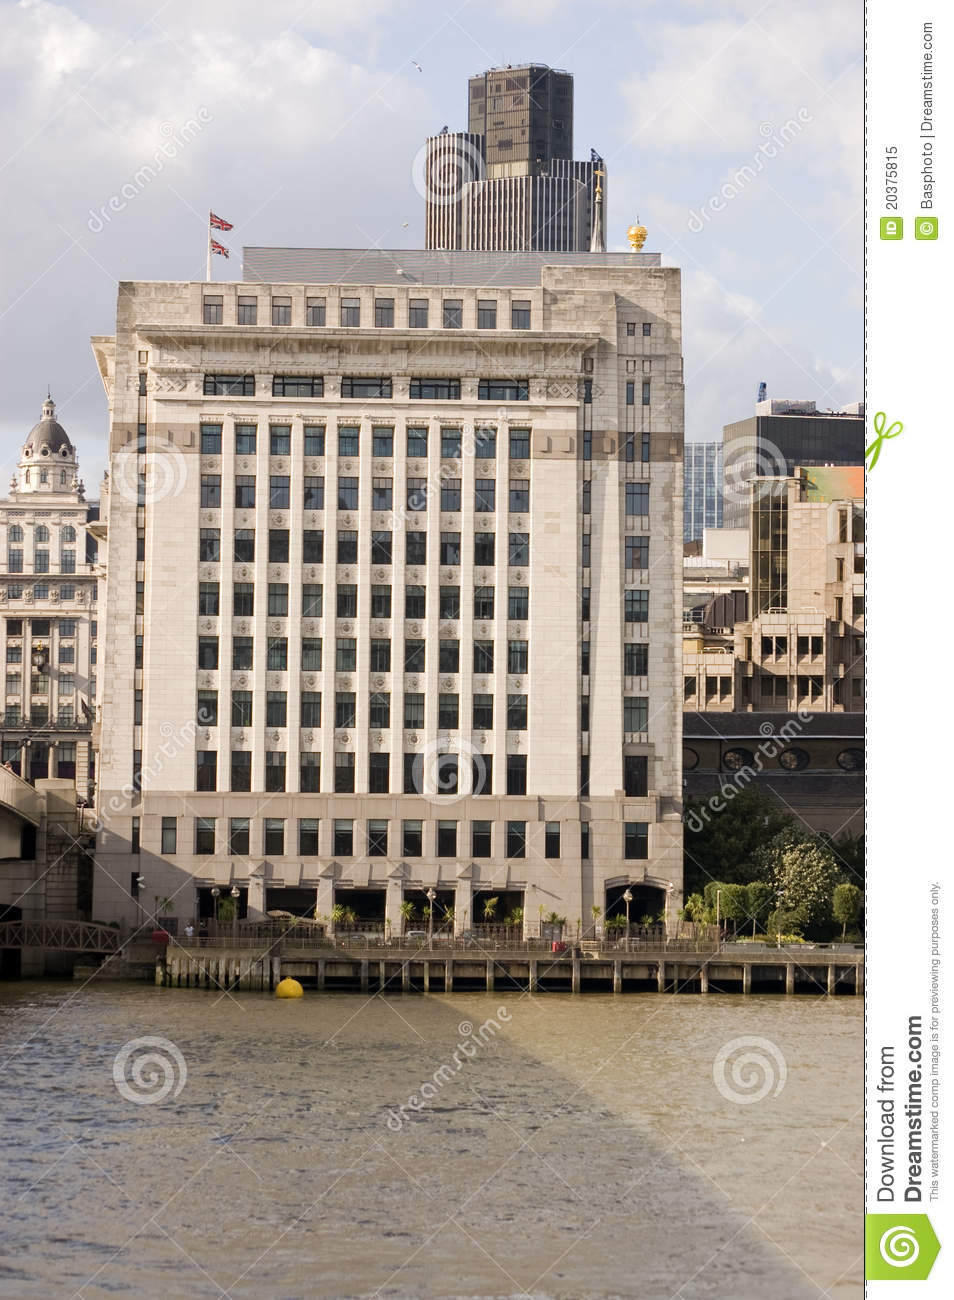 Adelaide house city of london royalty free stock photo for Adelaide house